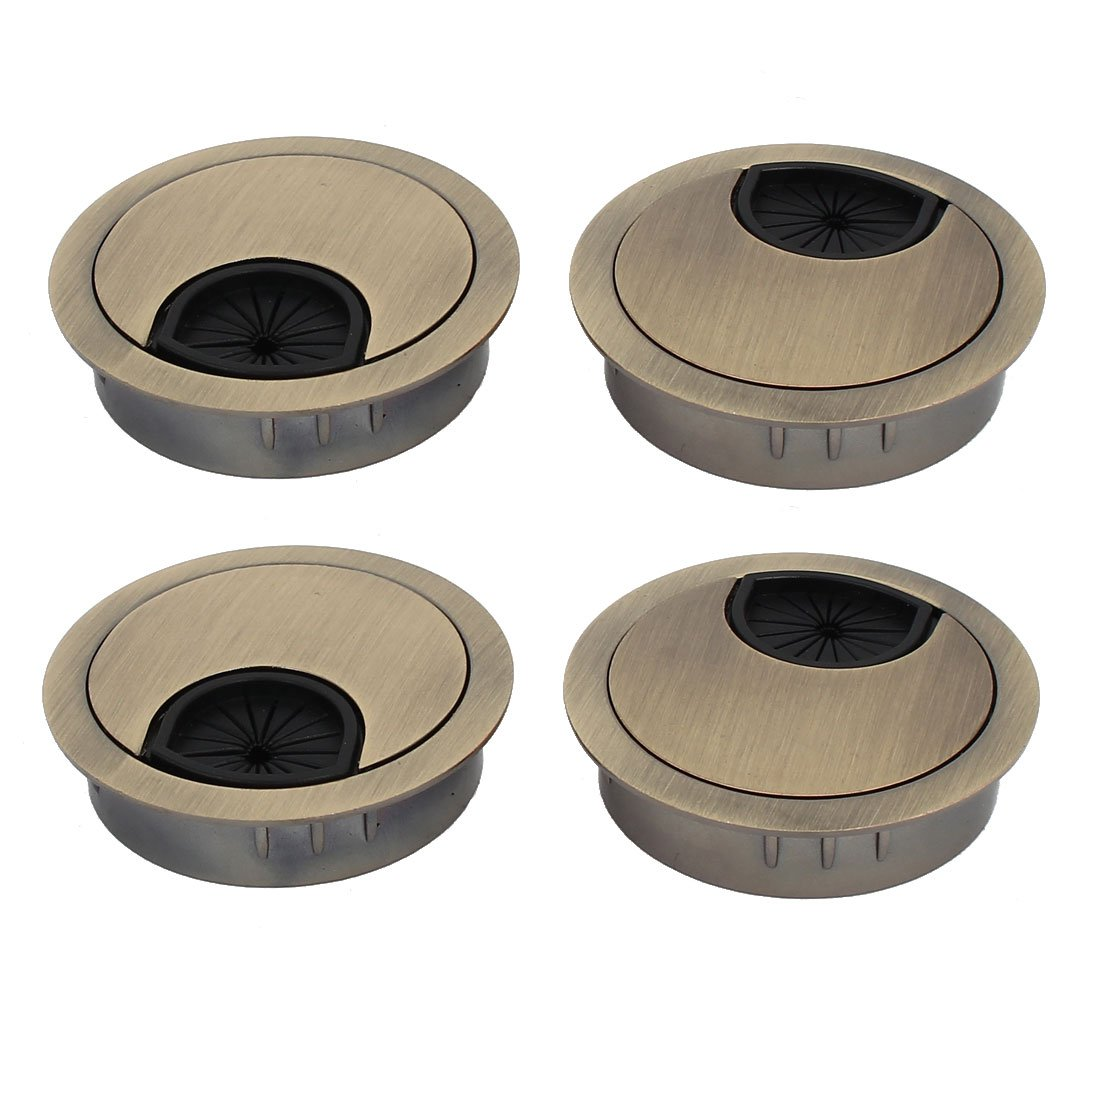 uxcell Computer Desk 50mm Dia Zinc Alloy Grommet Wire Cable Hole Cover Bronze Tone 4pcs by uxcell